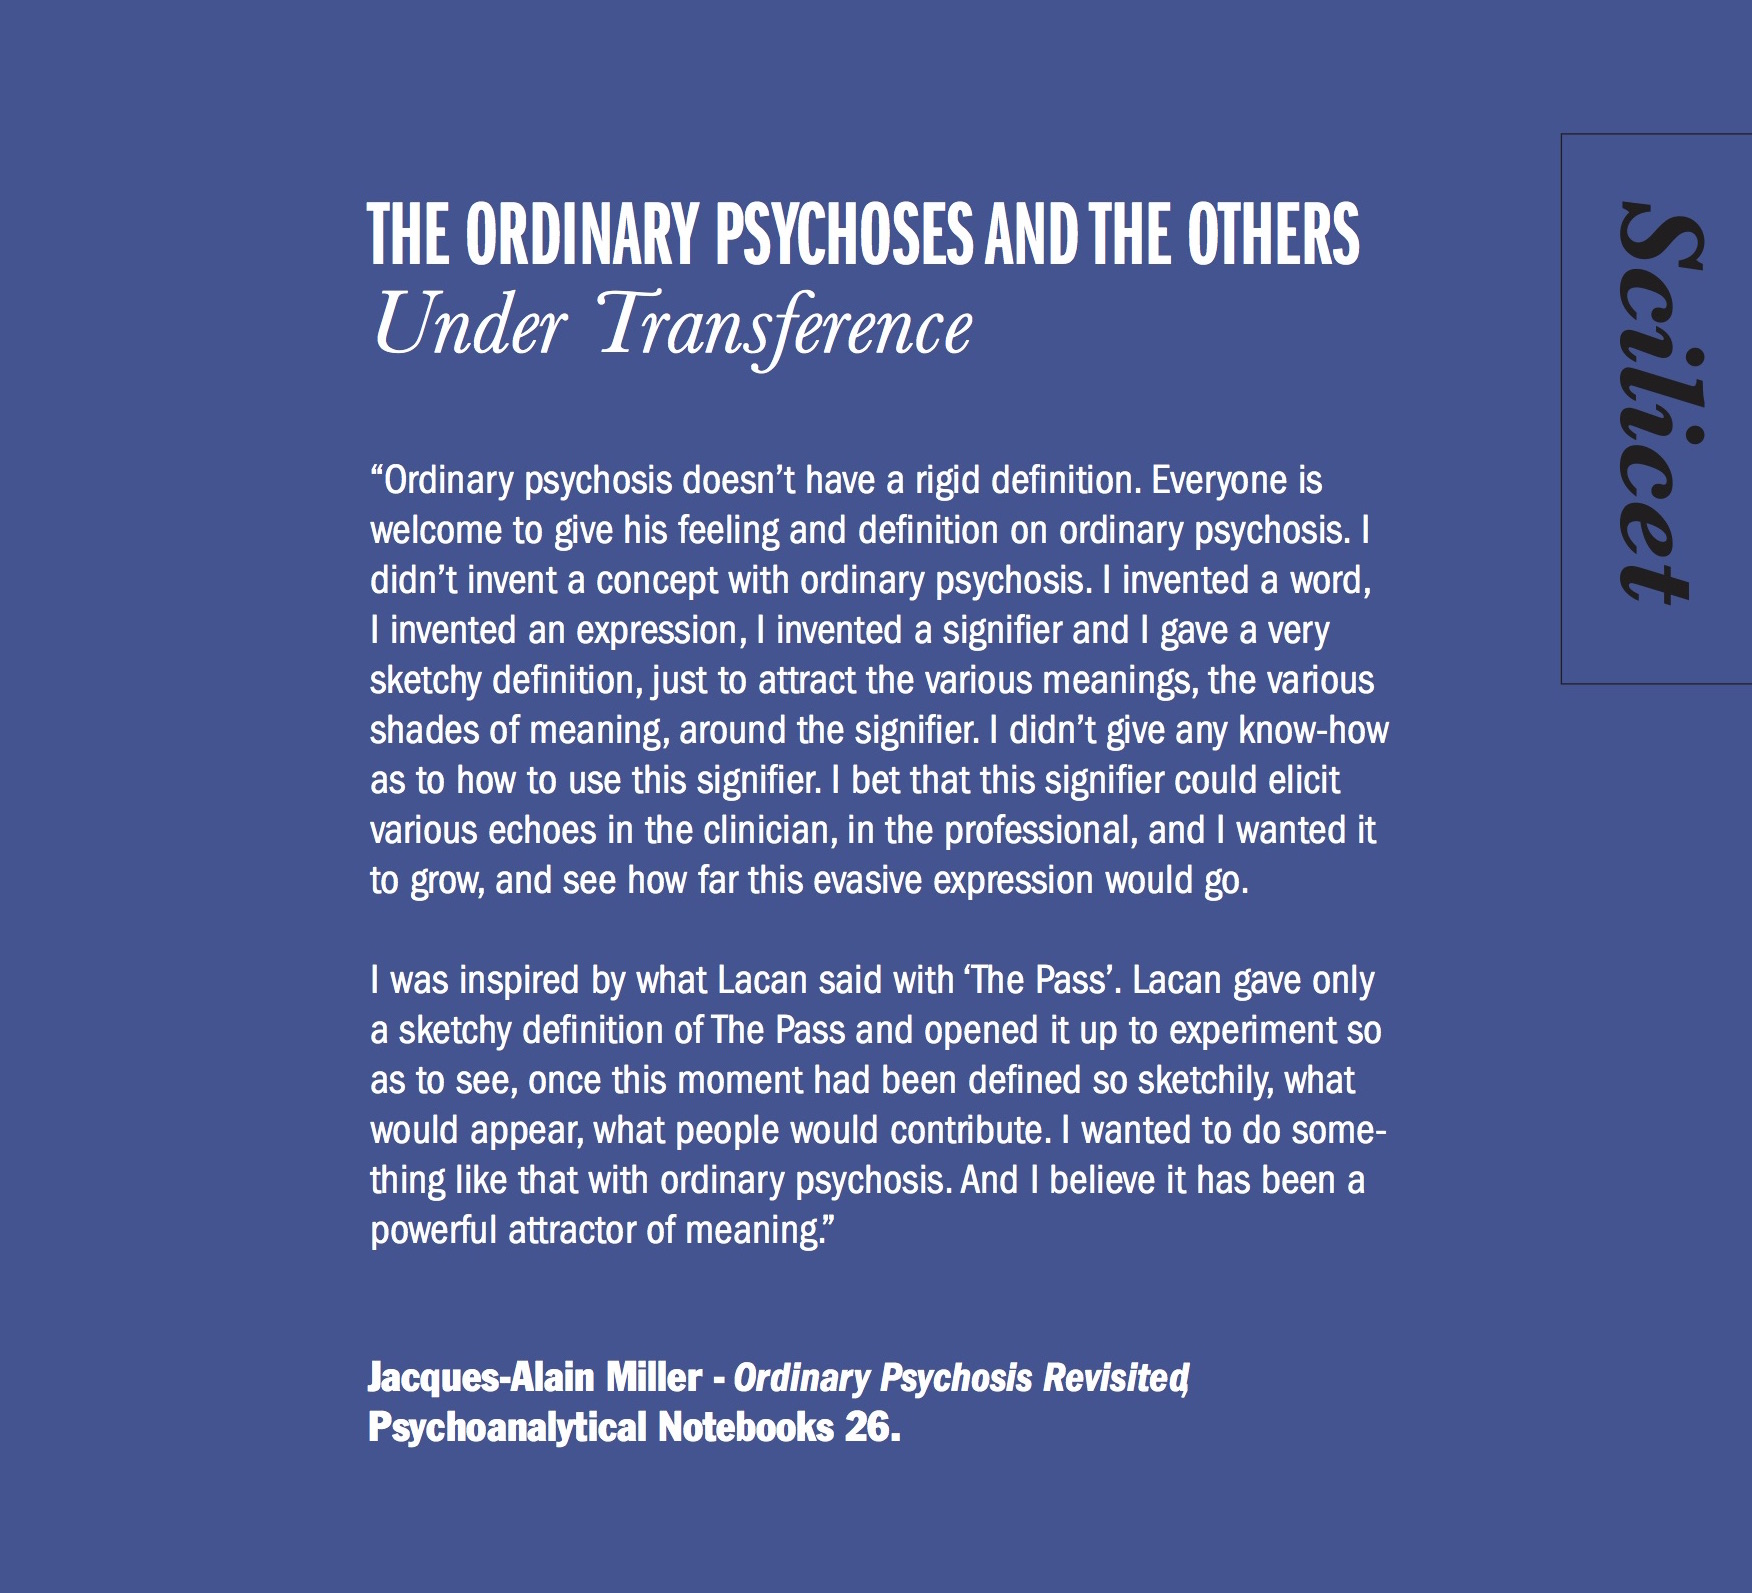 http://www.ecf-echoppe.com/index.php/the-ordinary-psychoses-and-the-others-under-transference.html